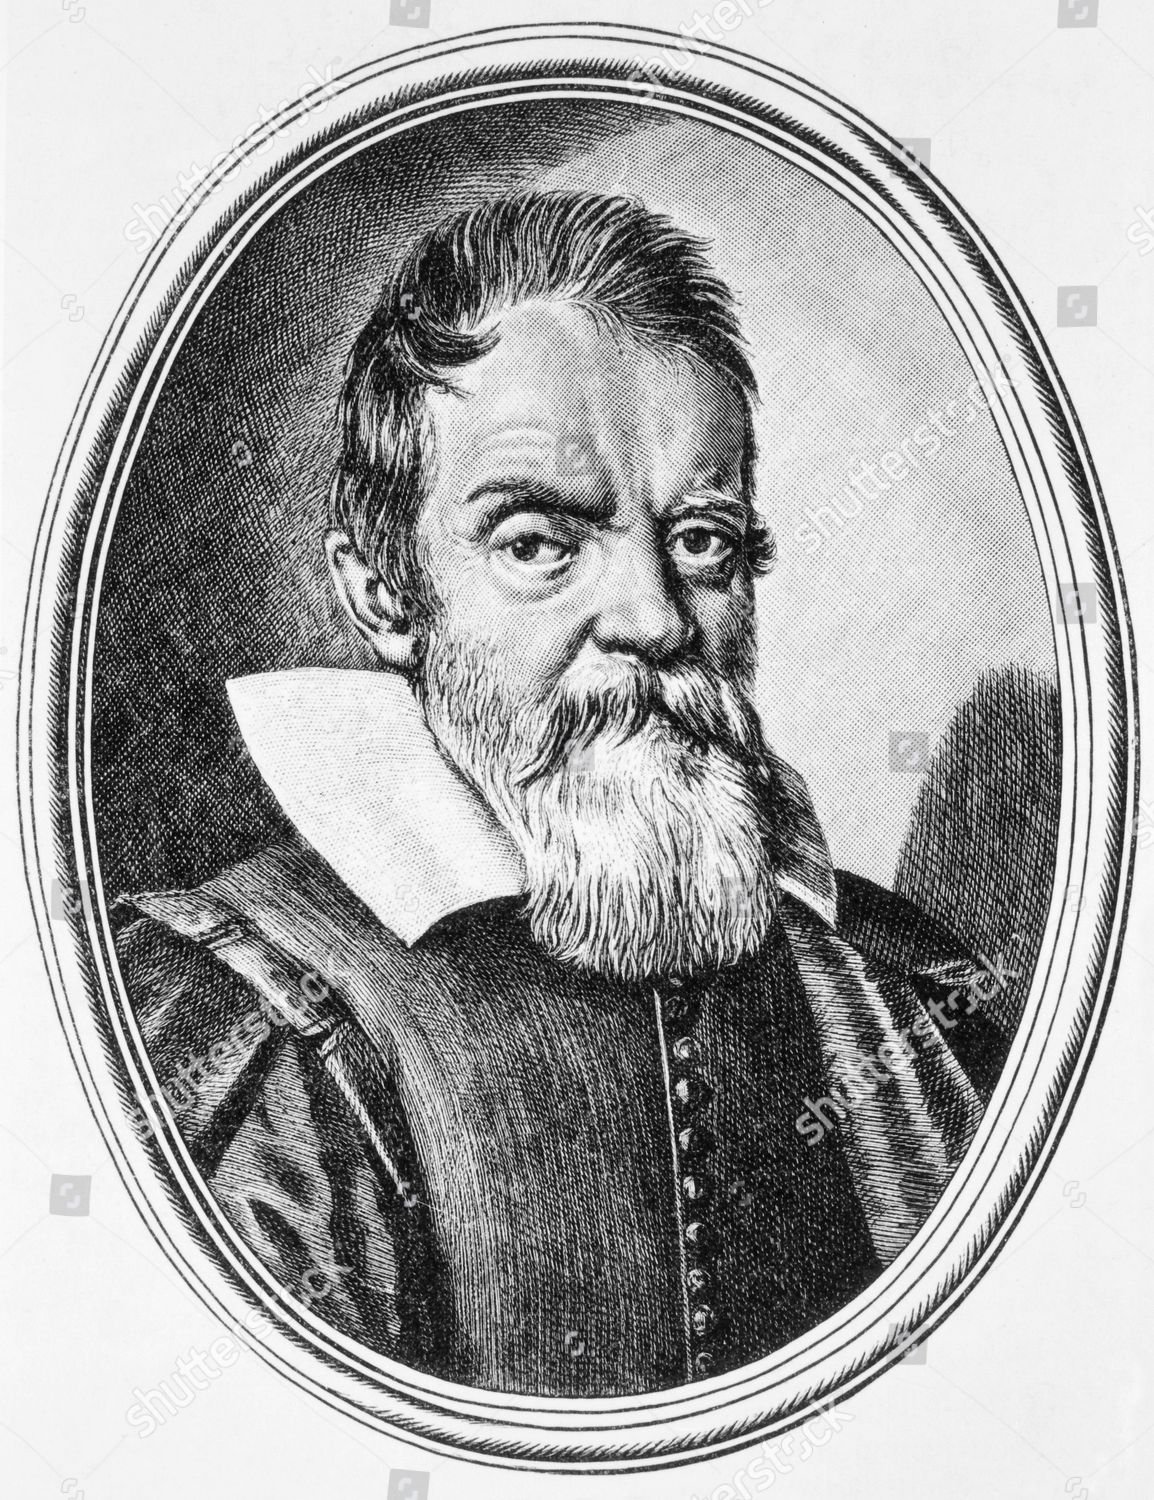 the life and influence of the italian astronomer galileo galilei Galileo galilei was an italian physicist and astronomerhe was born in pisa on february 15, 1564 galileo's father, vincenzo galilei, was a well-known musician vincenzo decided that his son should become a doctor.